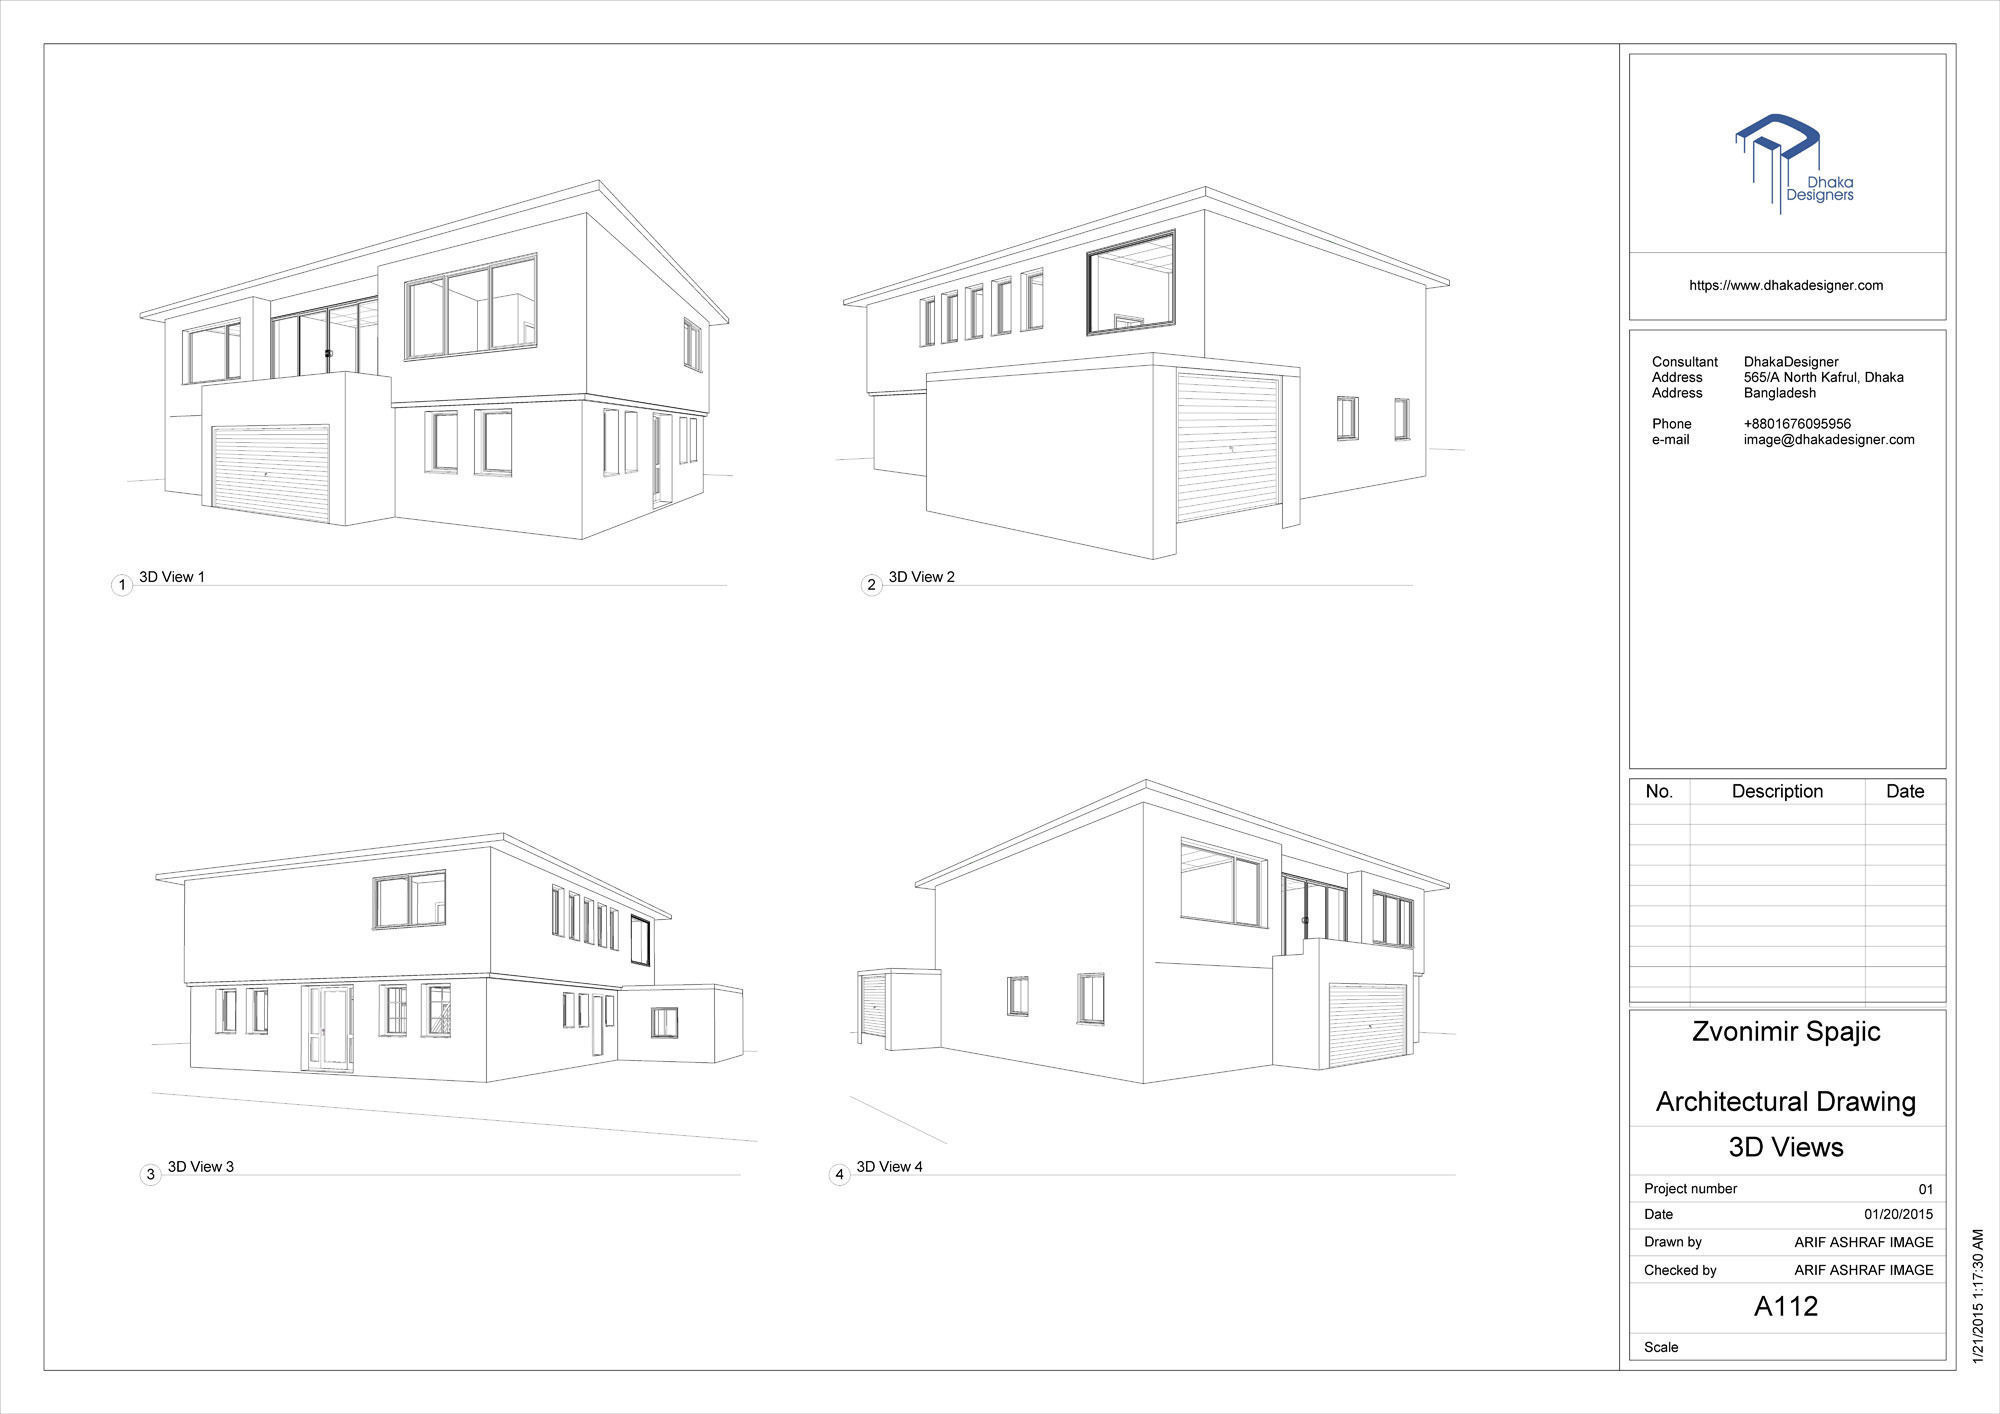 Architecture House Drawing. Architectural Drawing In Revit 3d Model Rvt  Architecture House